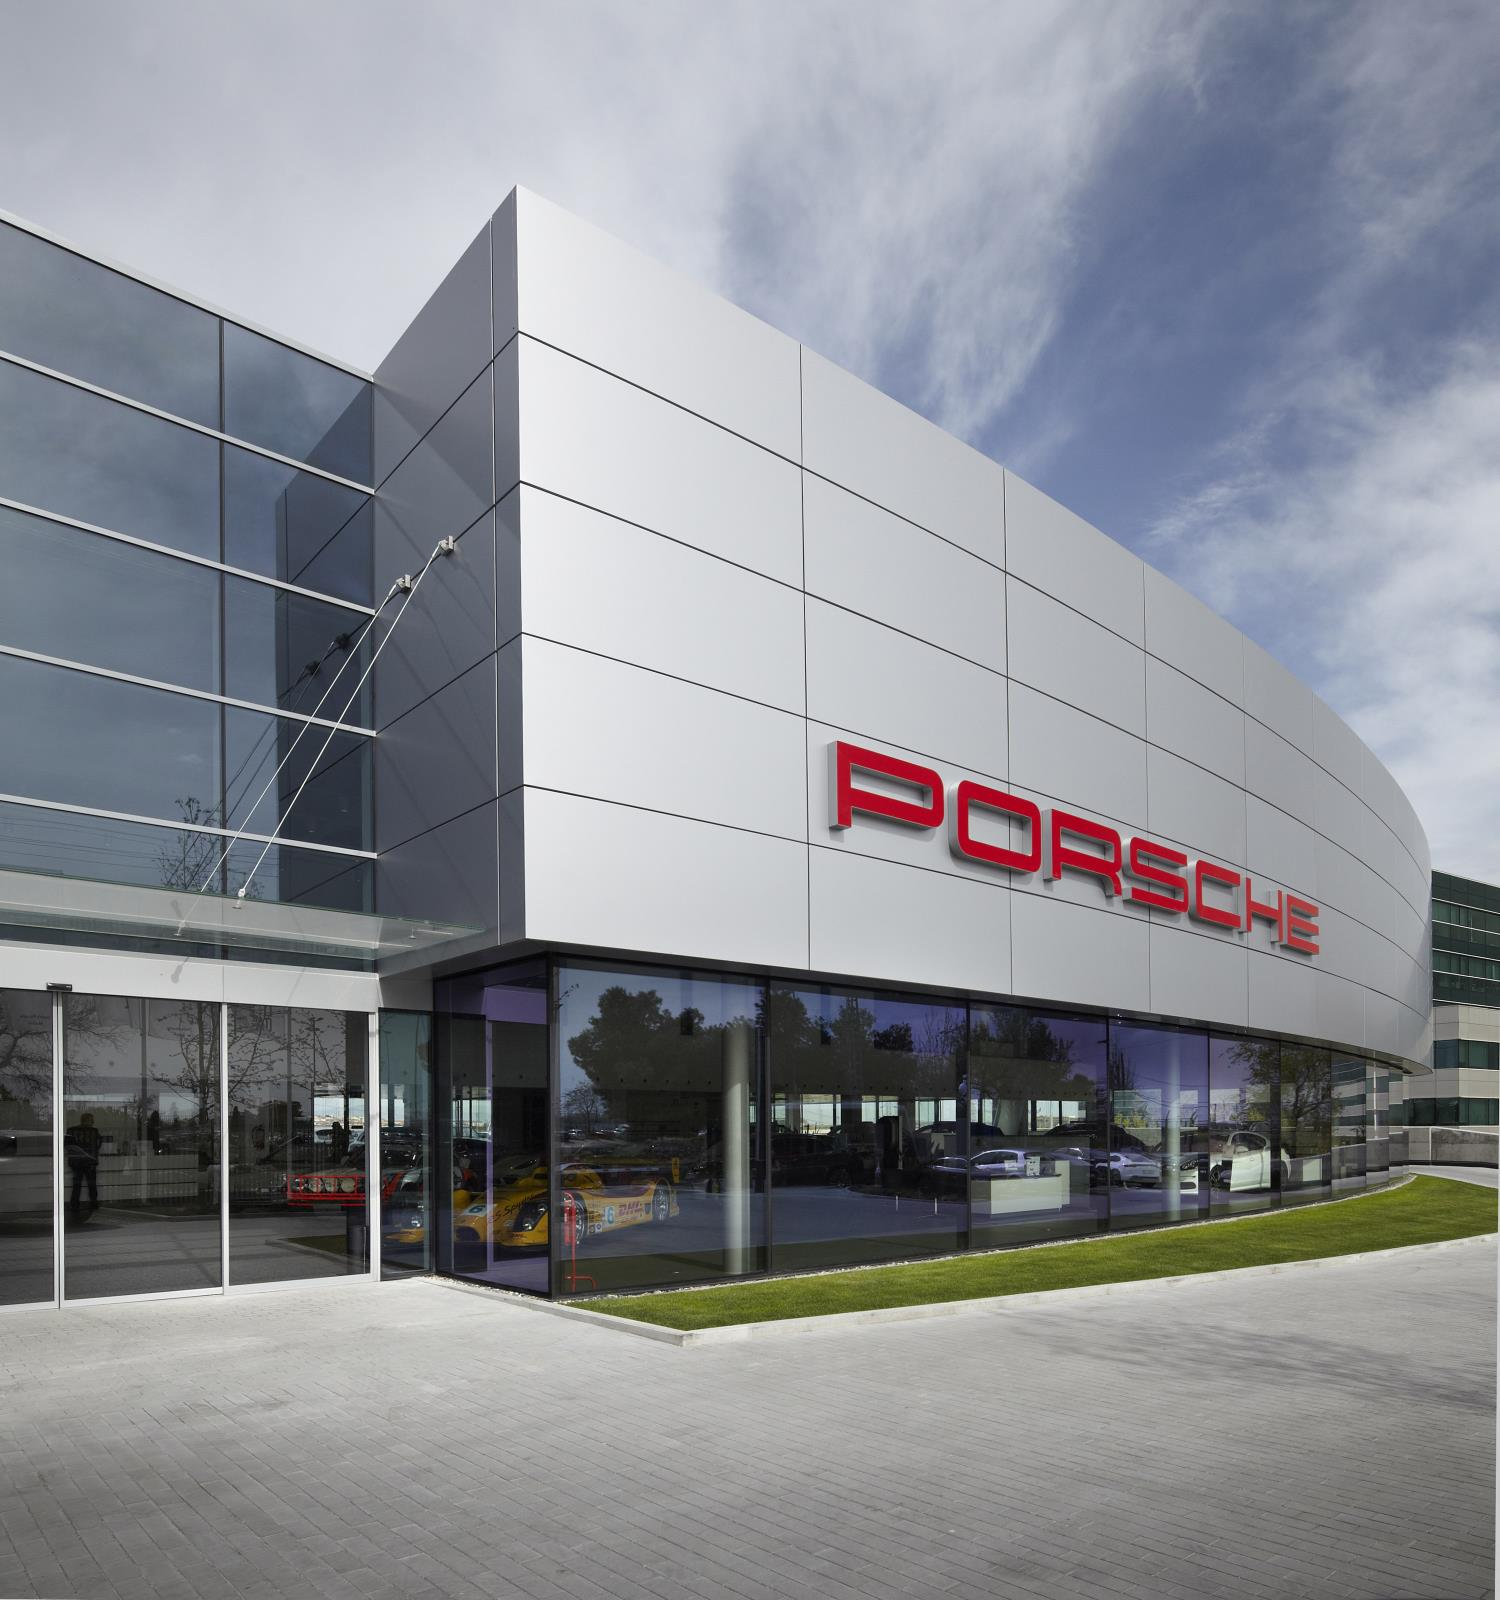 Porsche Madrid Norte